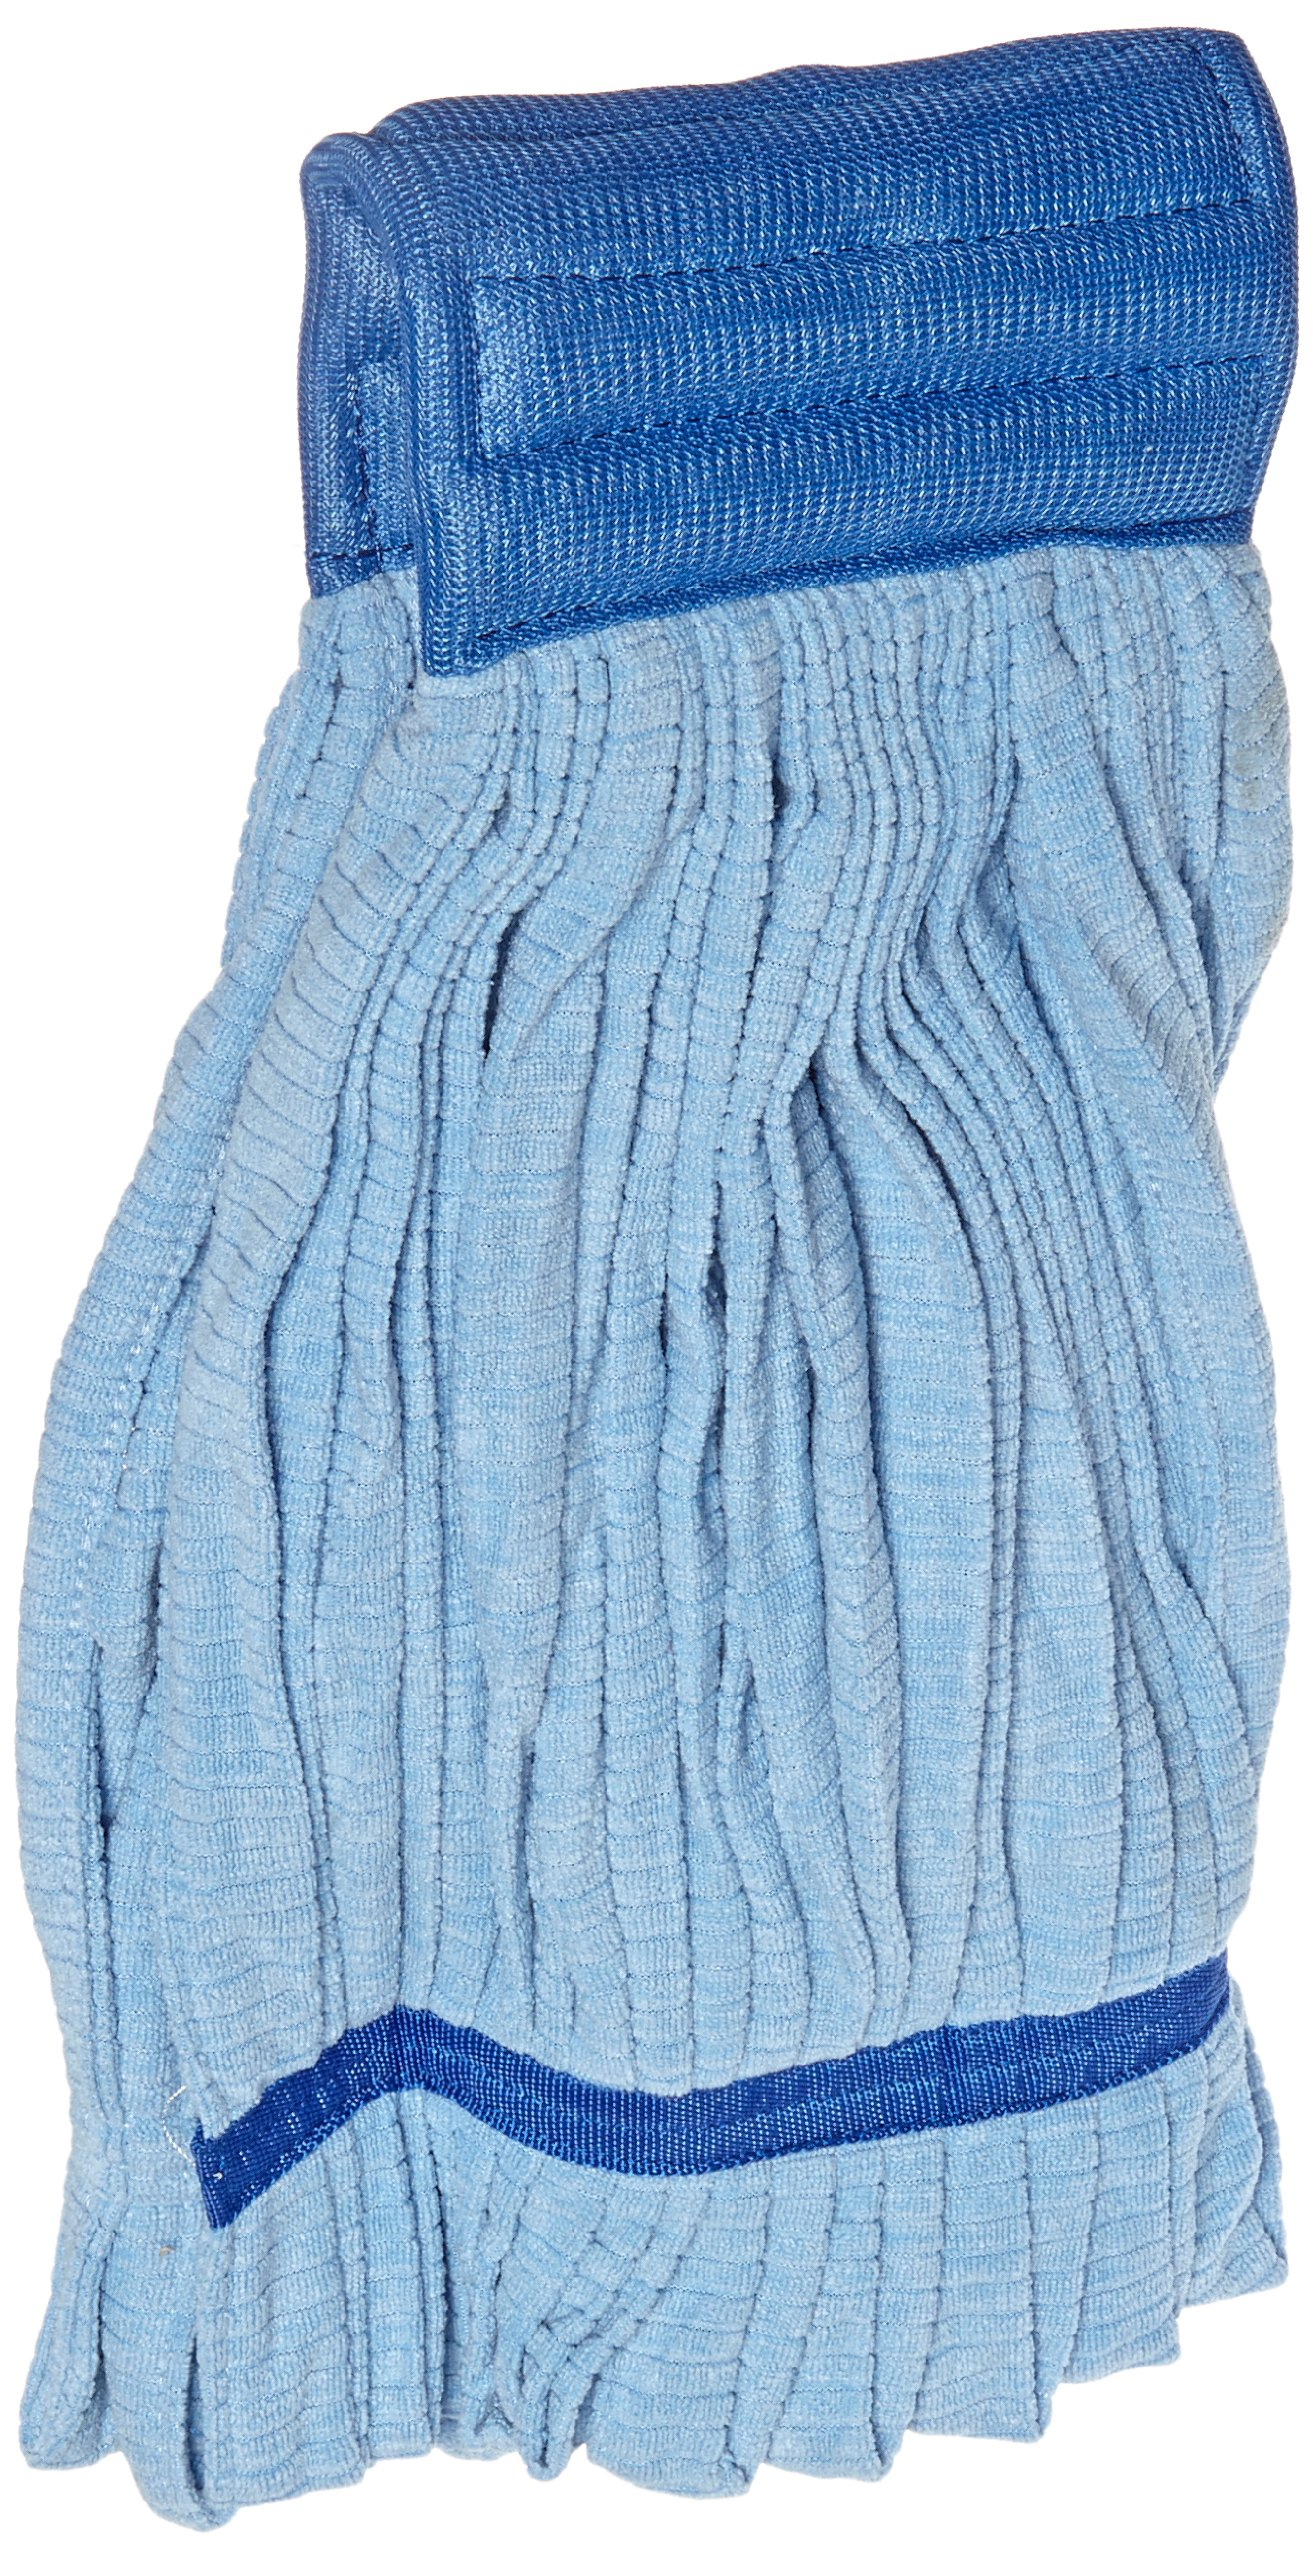 Impact 3118 Microfiber Tube Wet Mop with Mesh Headband, Large, Blue (Case of 12)